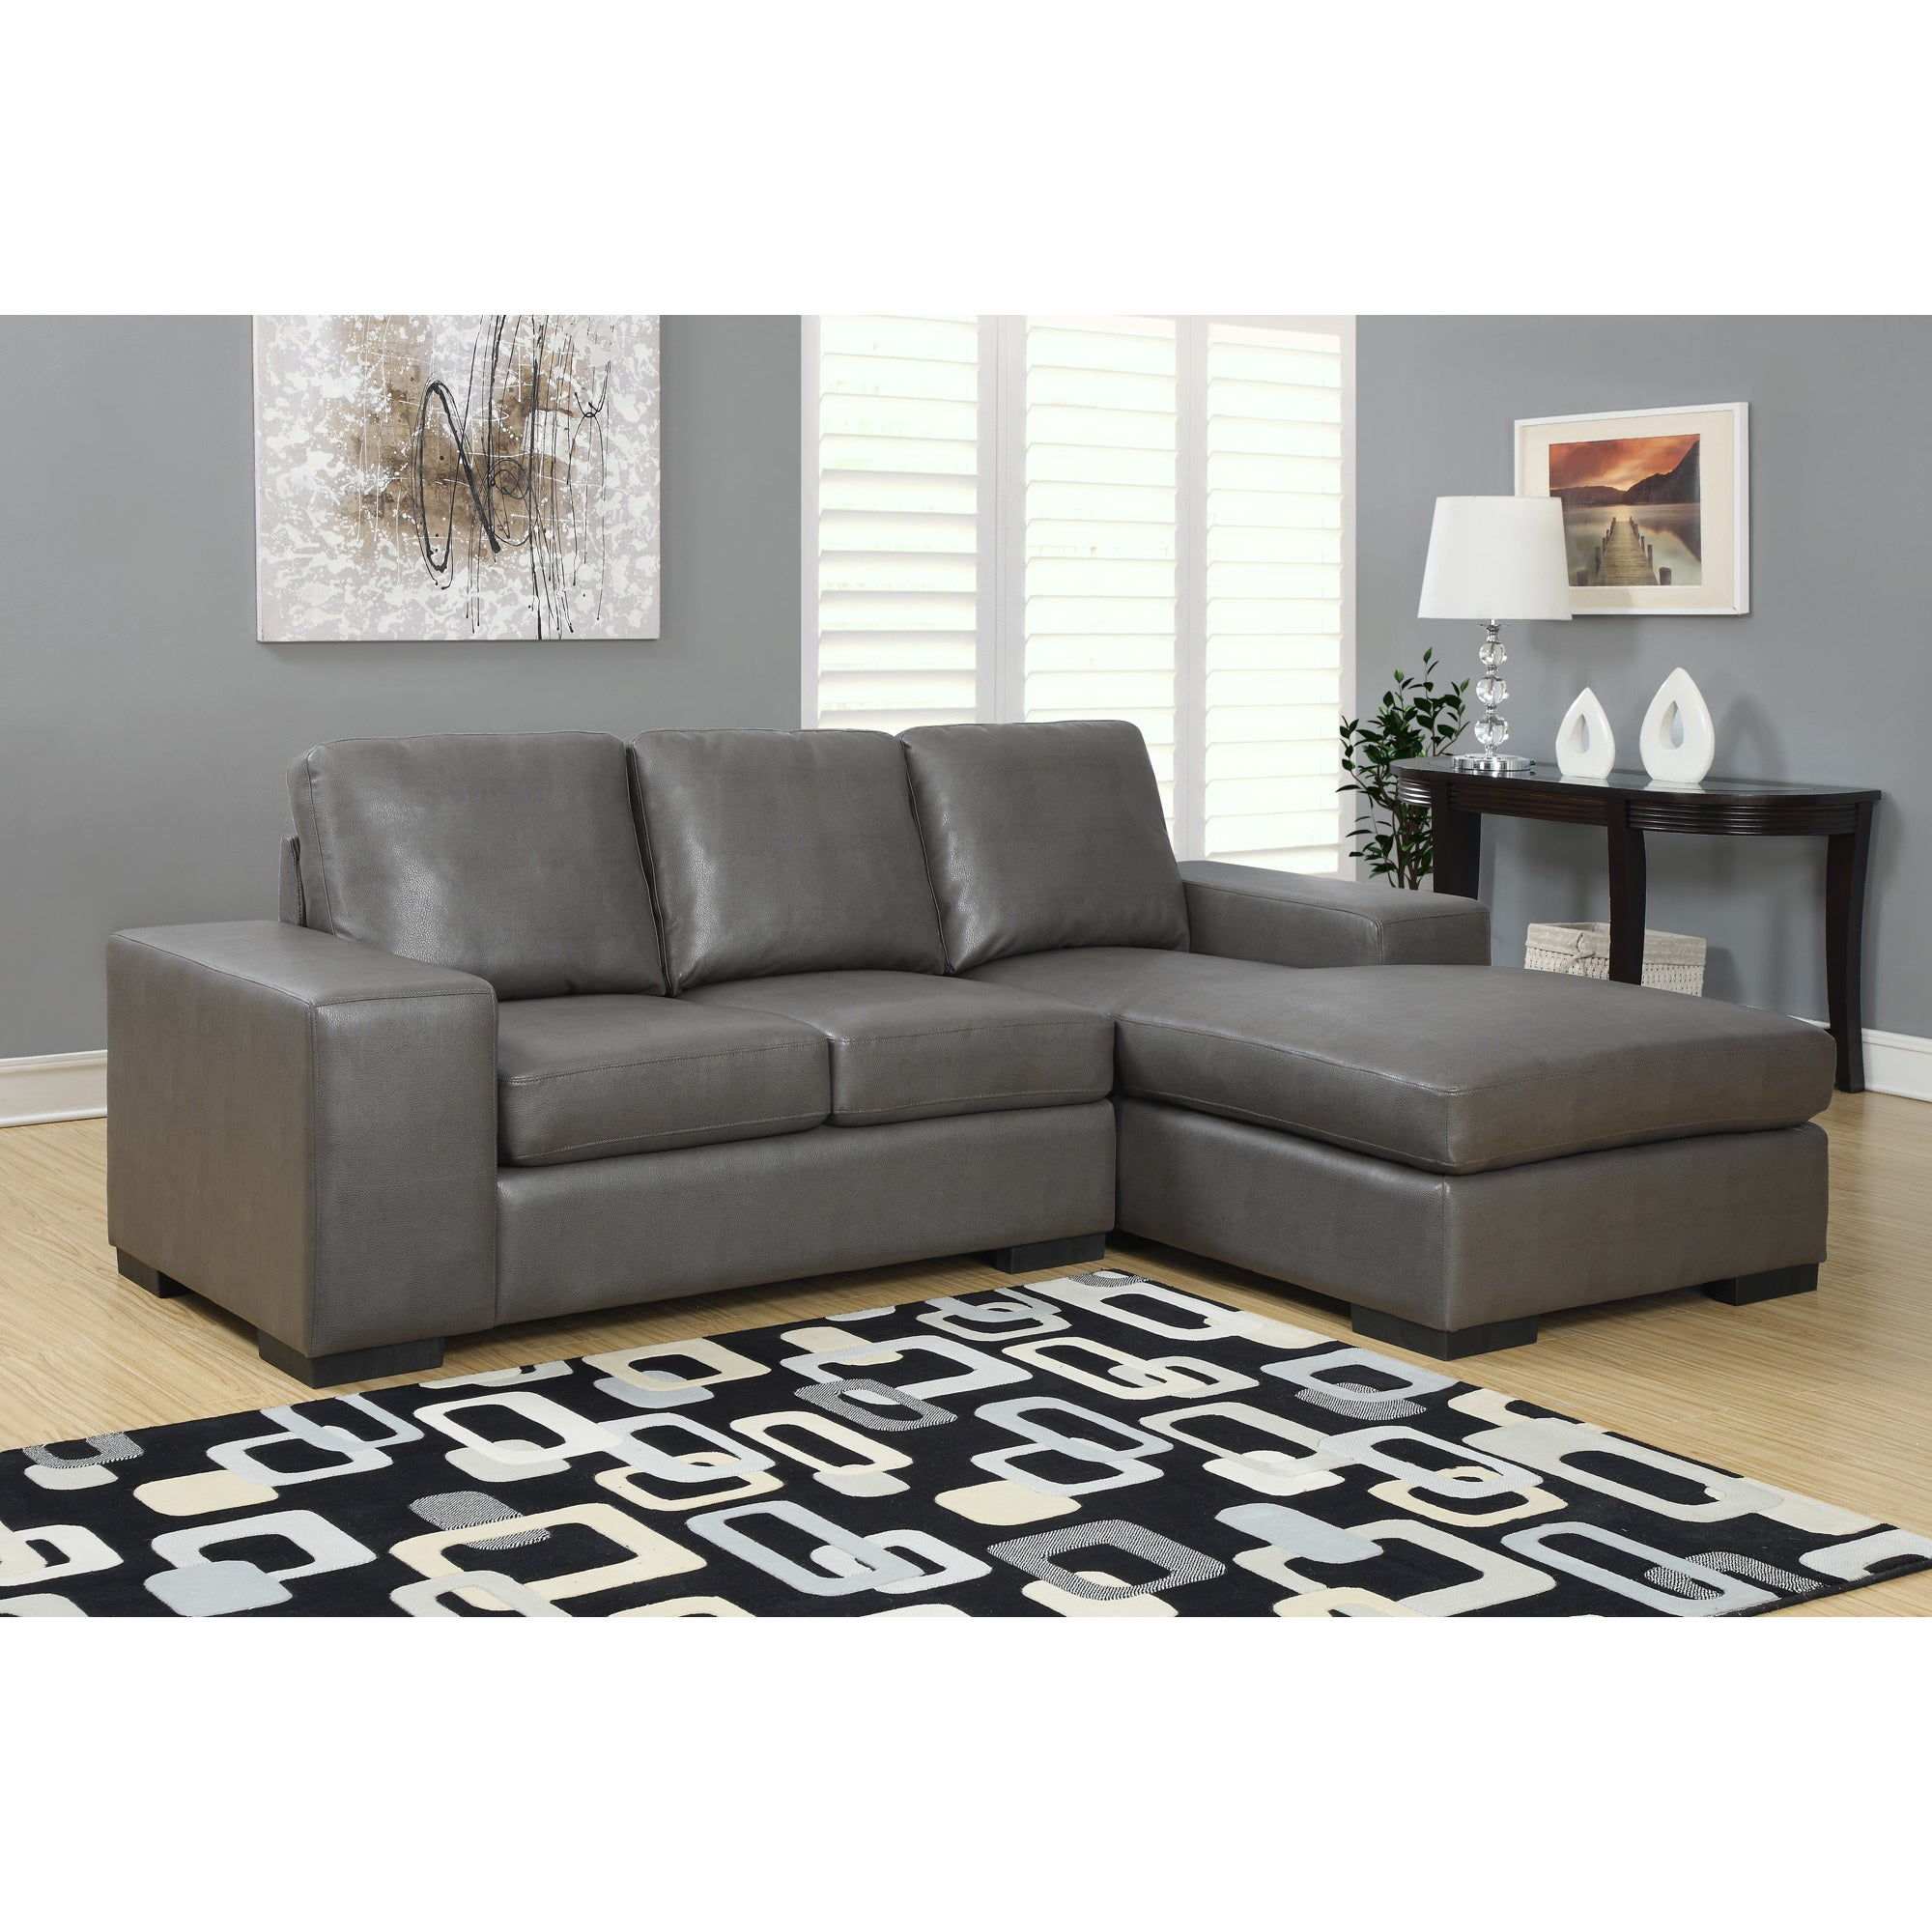 Shop Charcoal Grey Bonded Leather Sectional Sofa Lounger - Free ...